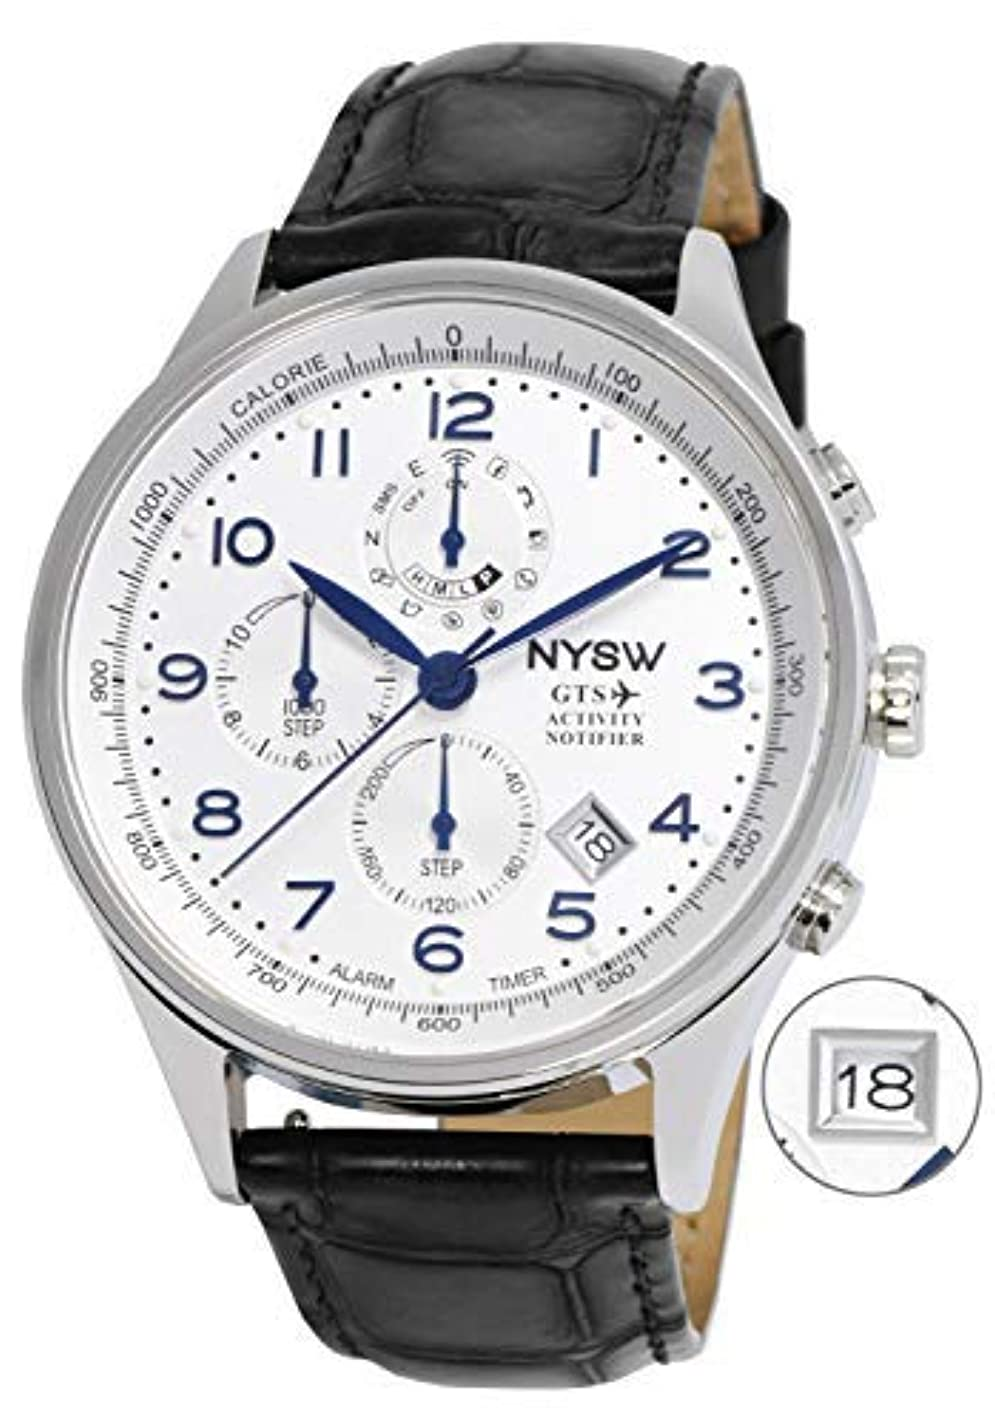 NYSW - World's 1st Hybrid Smartwatch for Men with Perpetual Calendar. This Luxury Fitness Tracker with Direct Steps Reading on Dial Advanced Discreet Haptic Vibration Notification SH-01-W